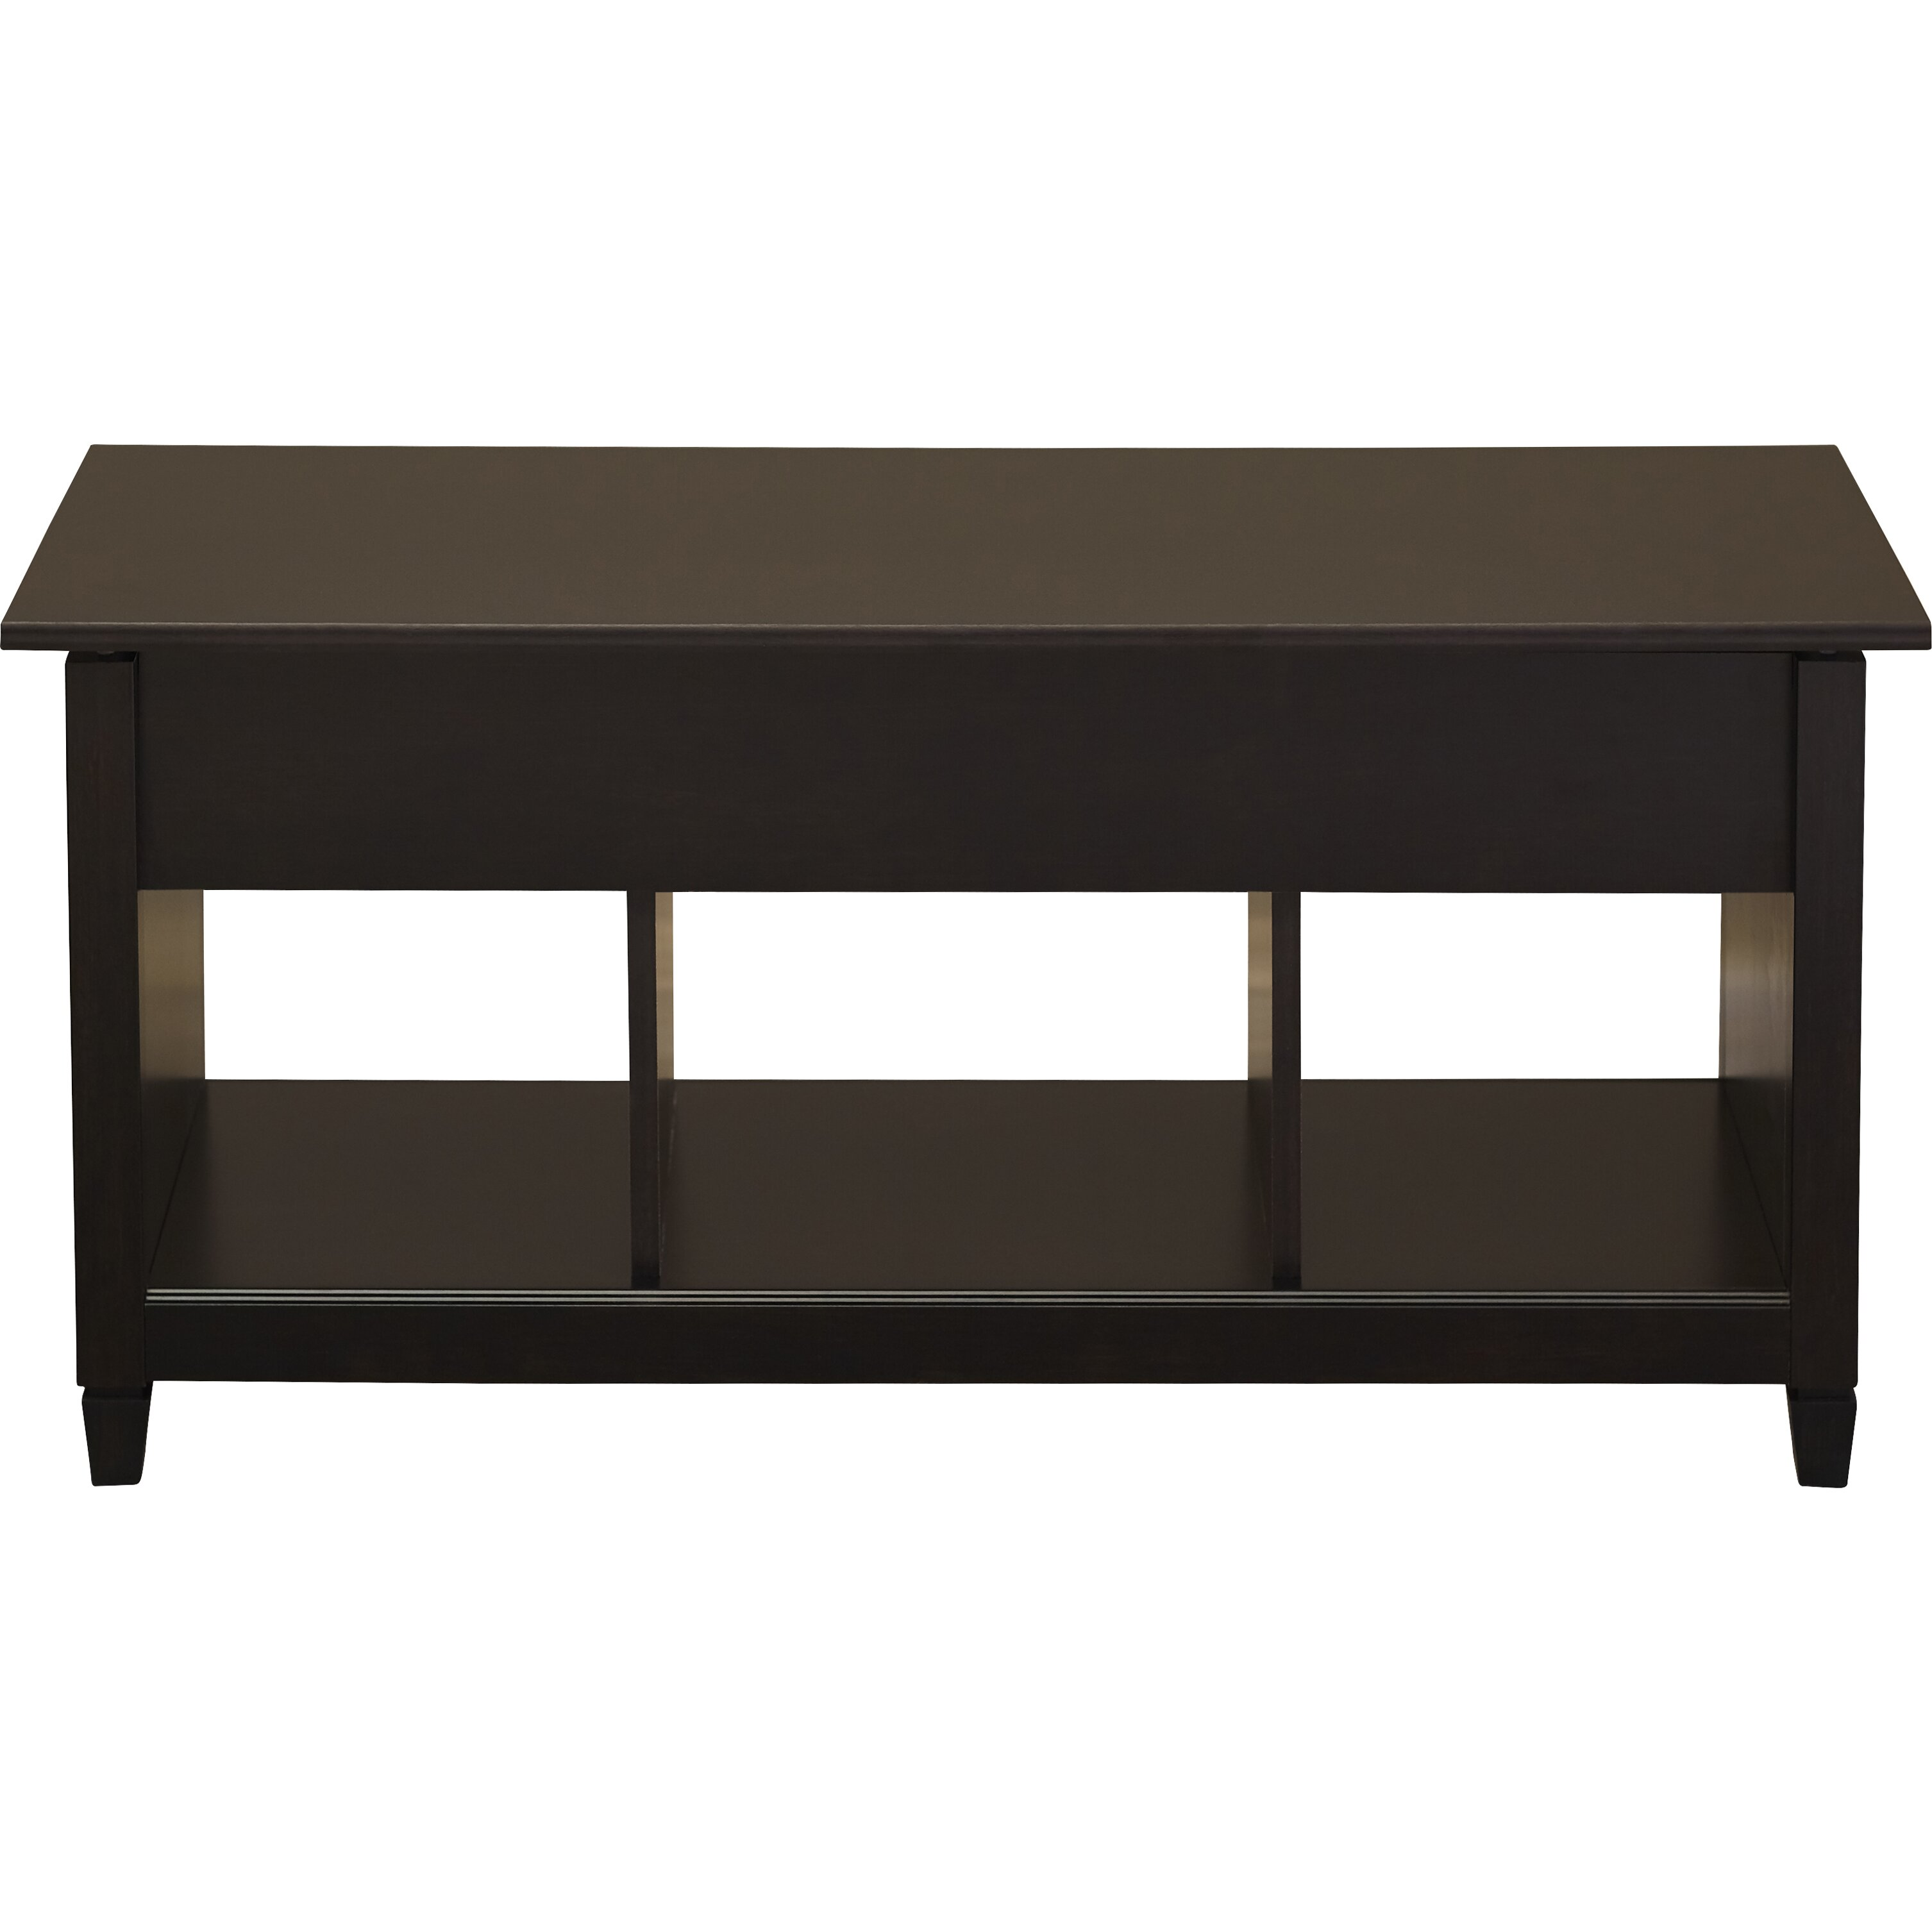 Three Posts Lamantia Coffee Table with Lift Top amp Reviews  : Three Posts Lamantia Coffee Table with Lift Top from www.wayfair.com size 3013 x 3013 jpeg 393kB